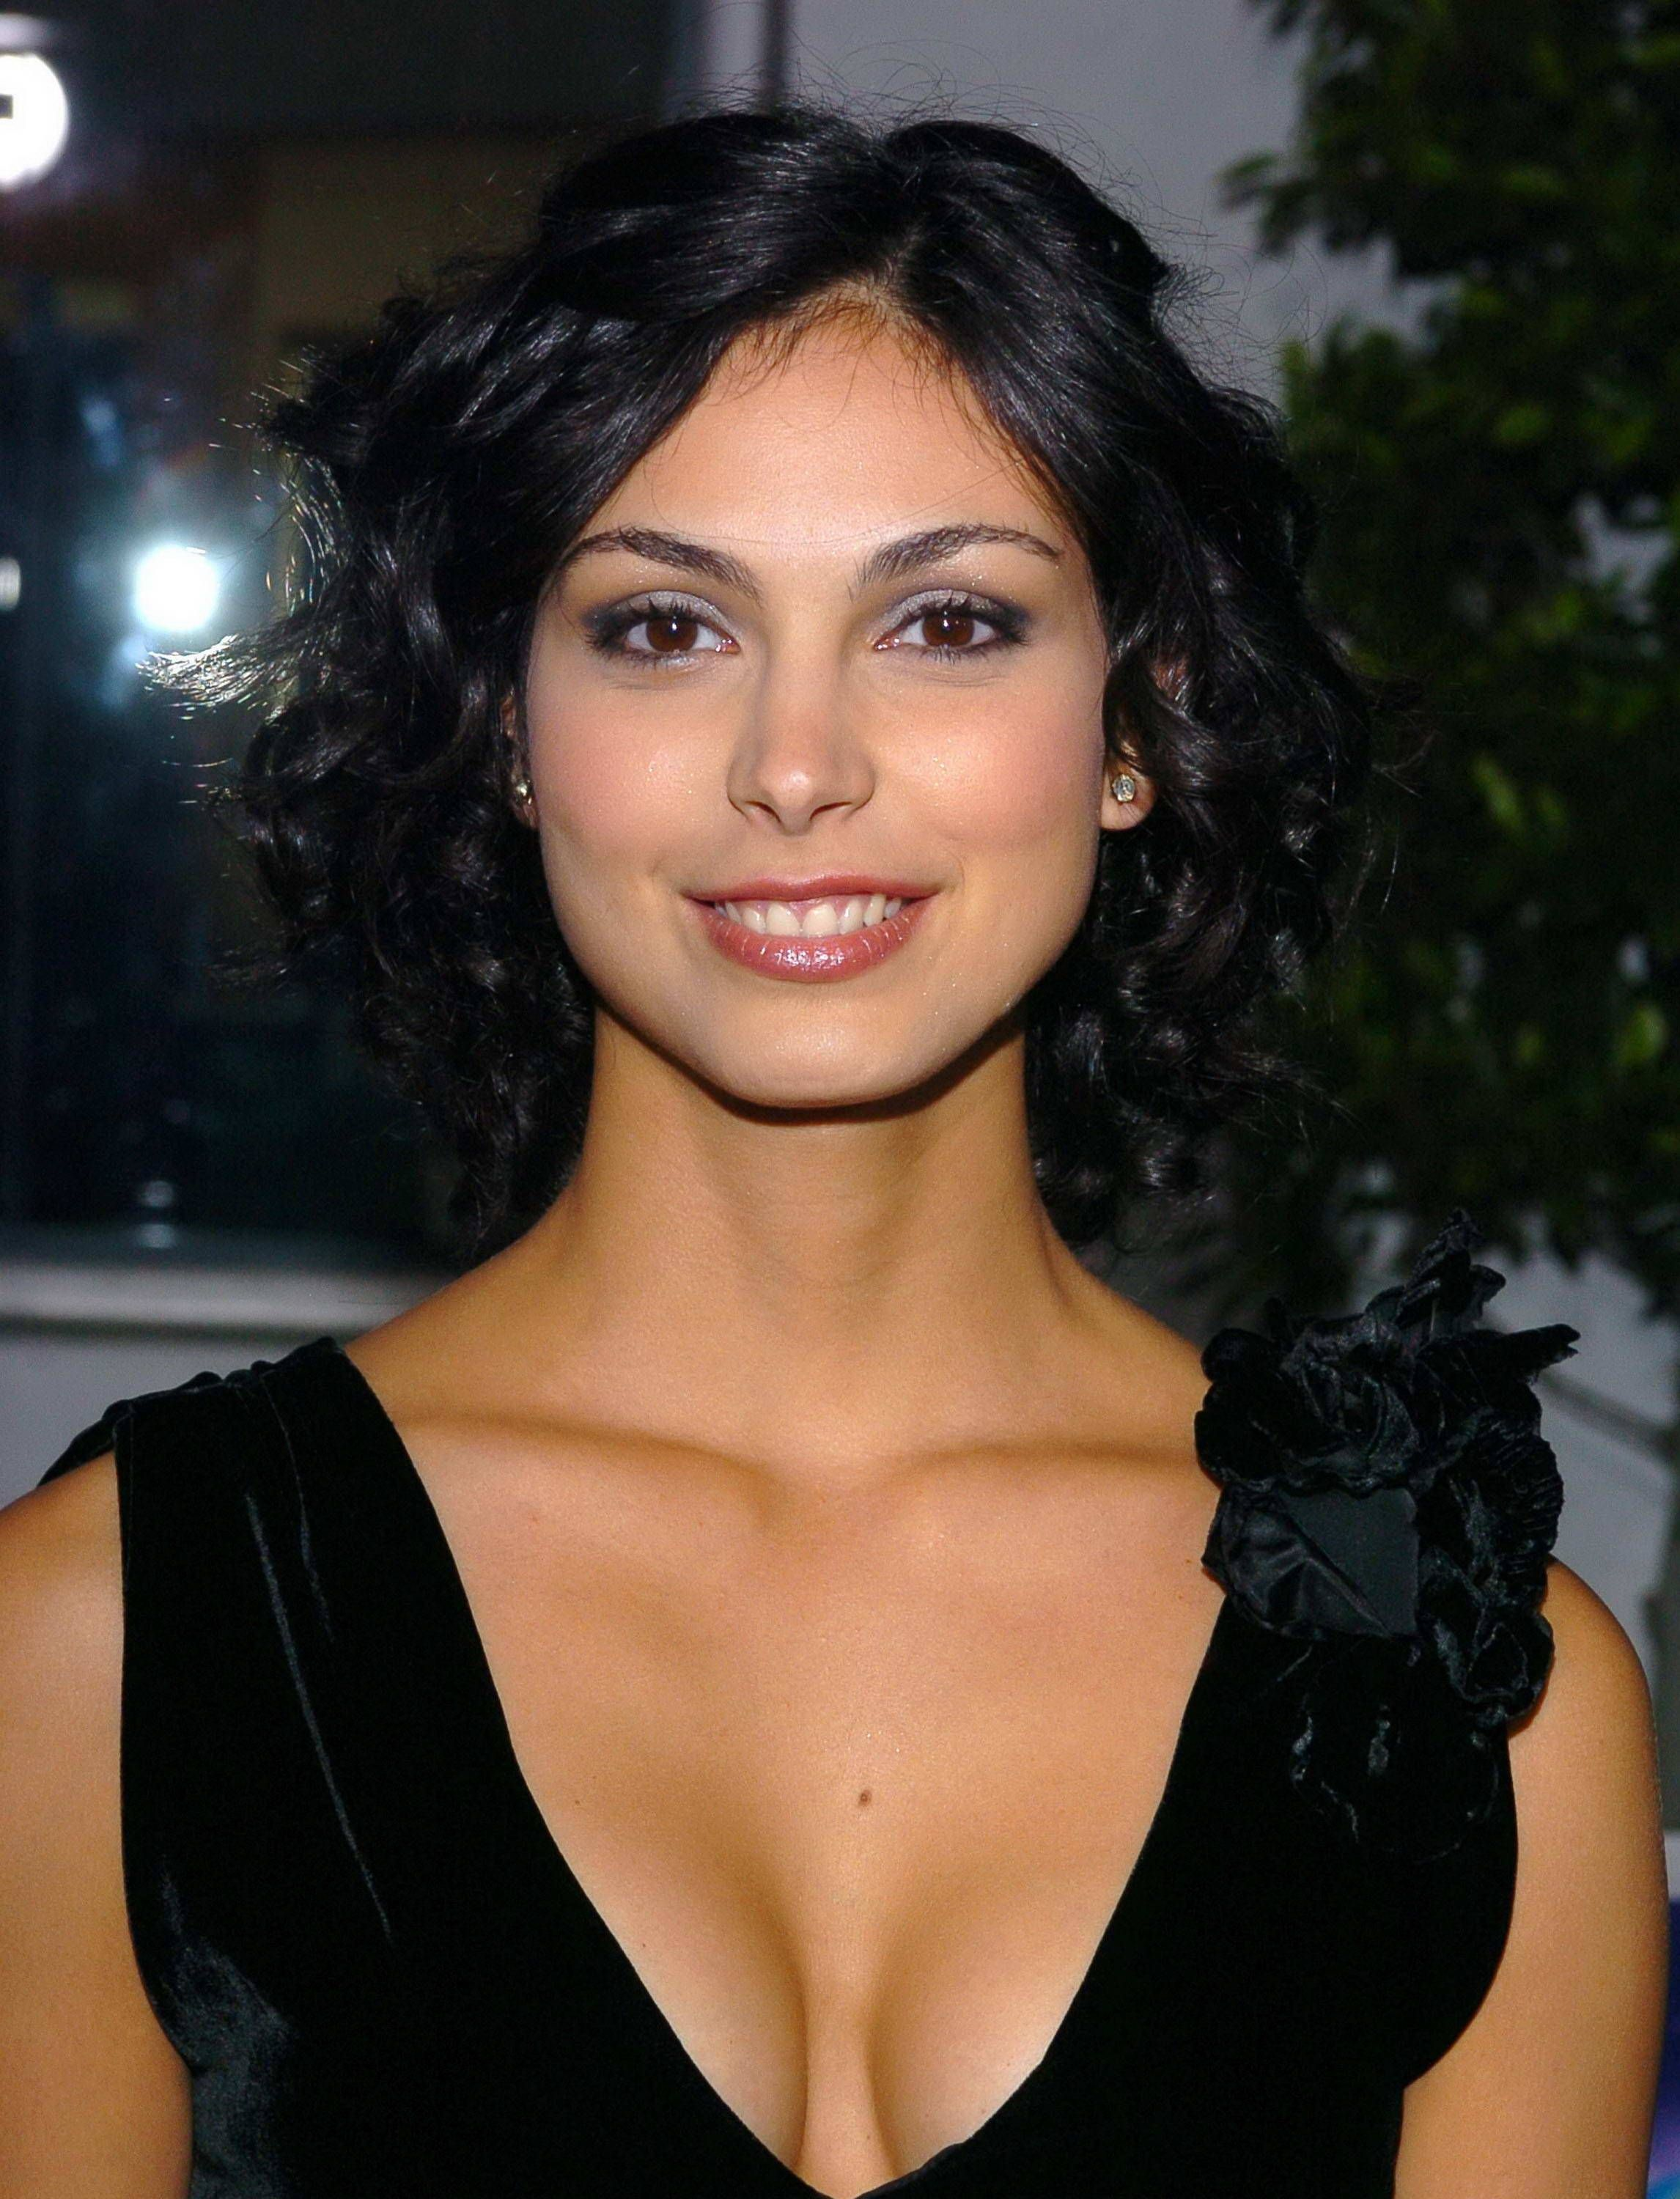 Video Morena Baccarin nude (45 photo), Pussy, Leaked, Feet, bra 2015